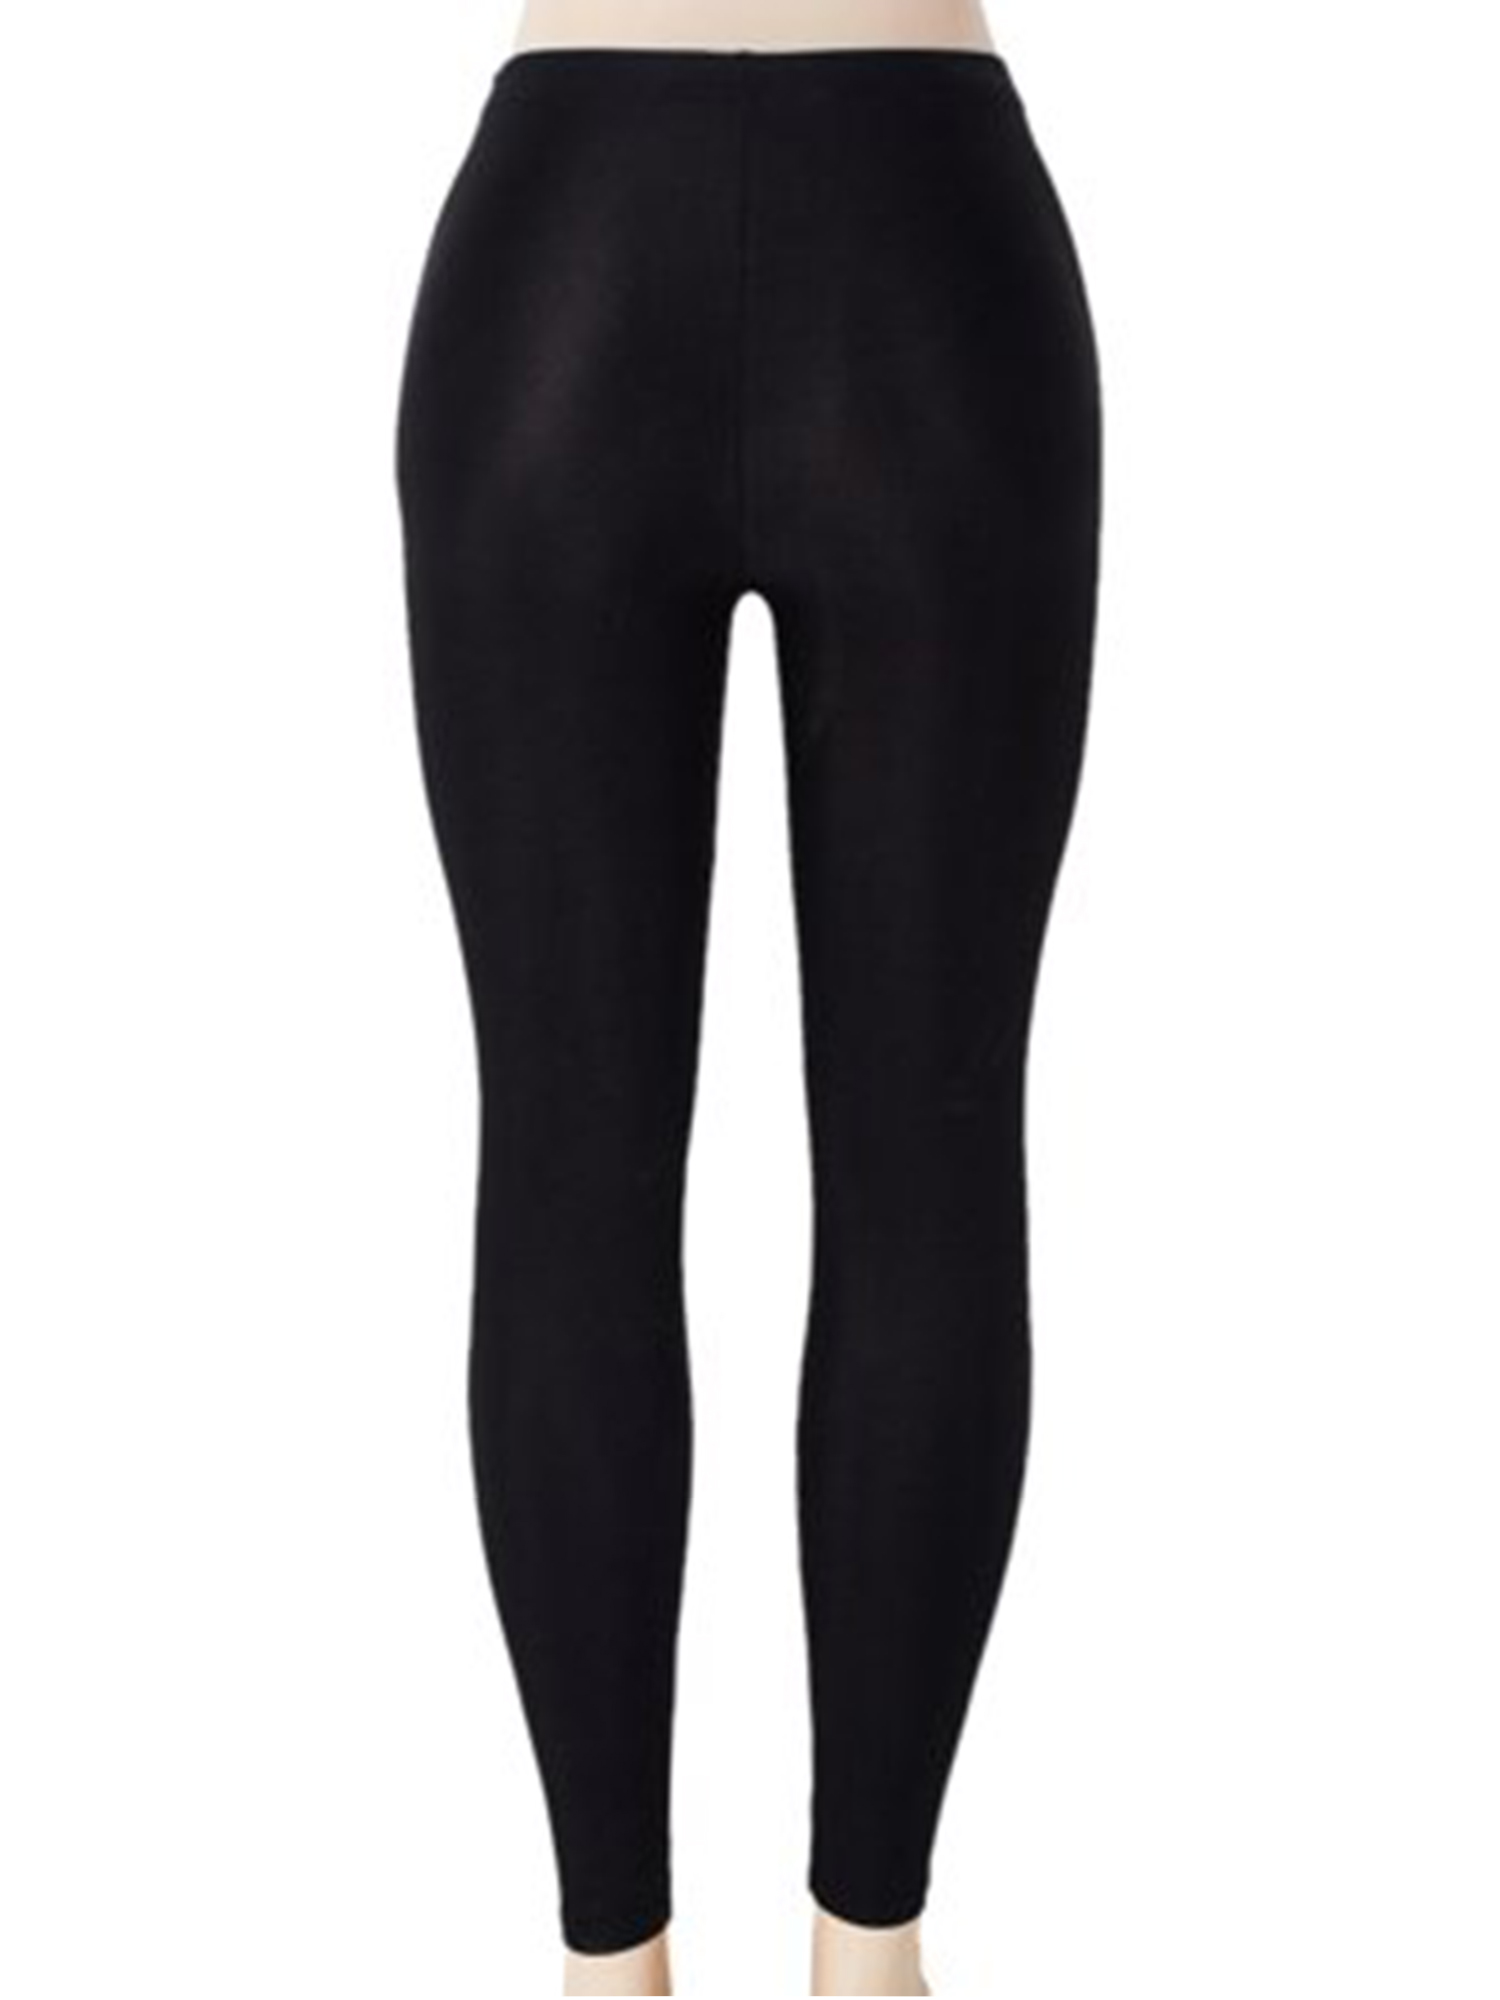 d13751880199d SAYFUT - SAYFUT Women's Solid Color Leggings Seamless Stretchy Tights Pants  Black Size S-3XL - Walmart.com